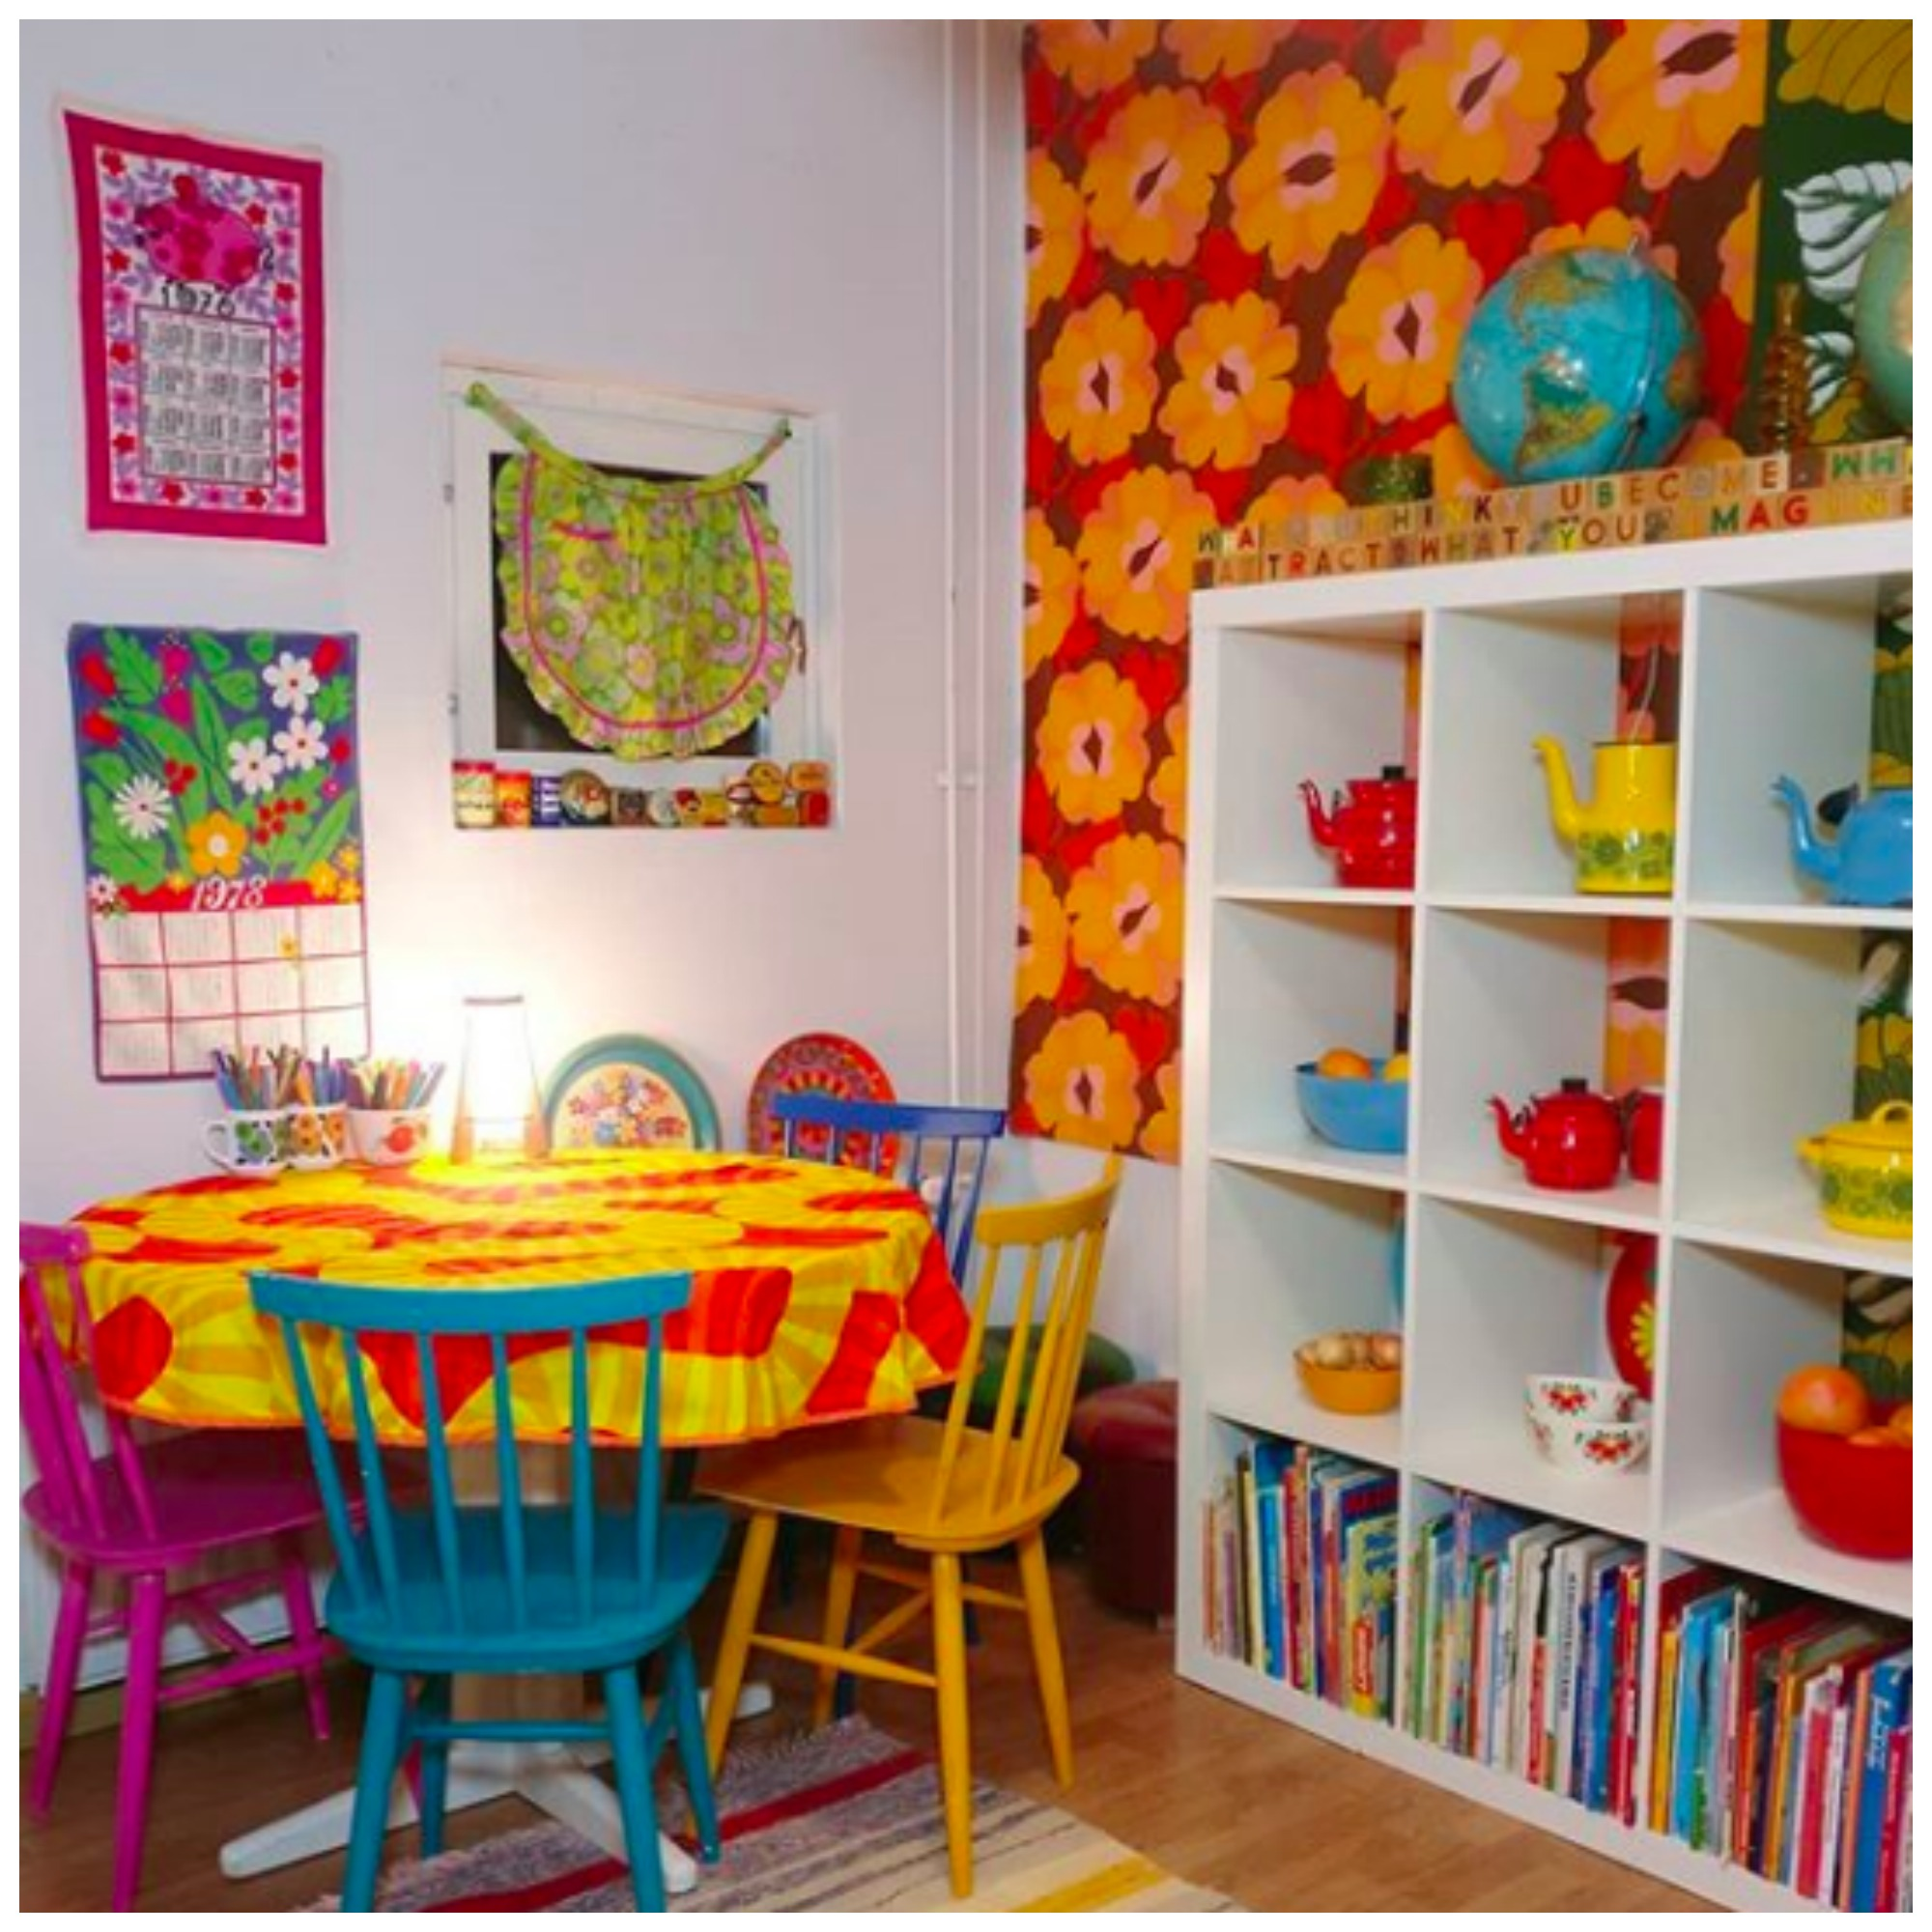 Home Tour: A Whimsical Wonderland of Color and Vintage Collections at Maija's Home In Finland